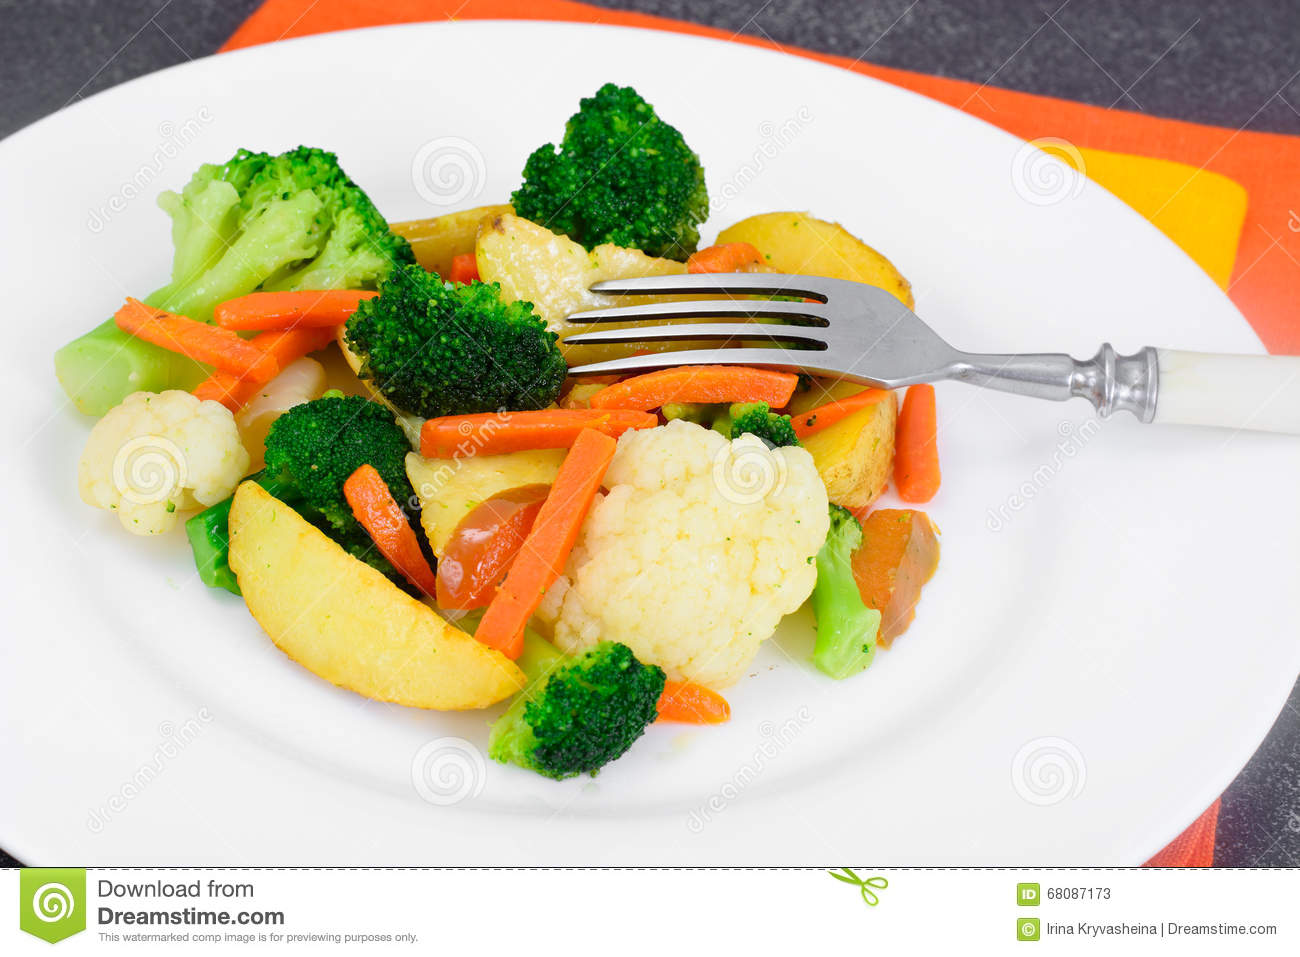 Steamed Vegetables Potatoes Carrots Cauliflower Broccoli Stock Image Image Of Beef Food 68087173